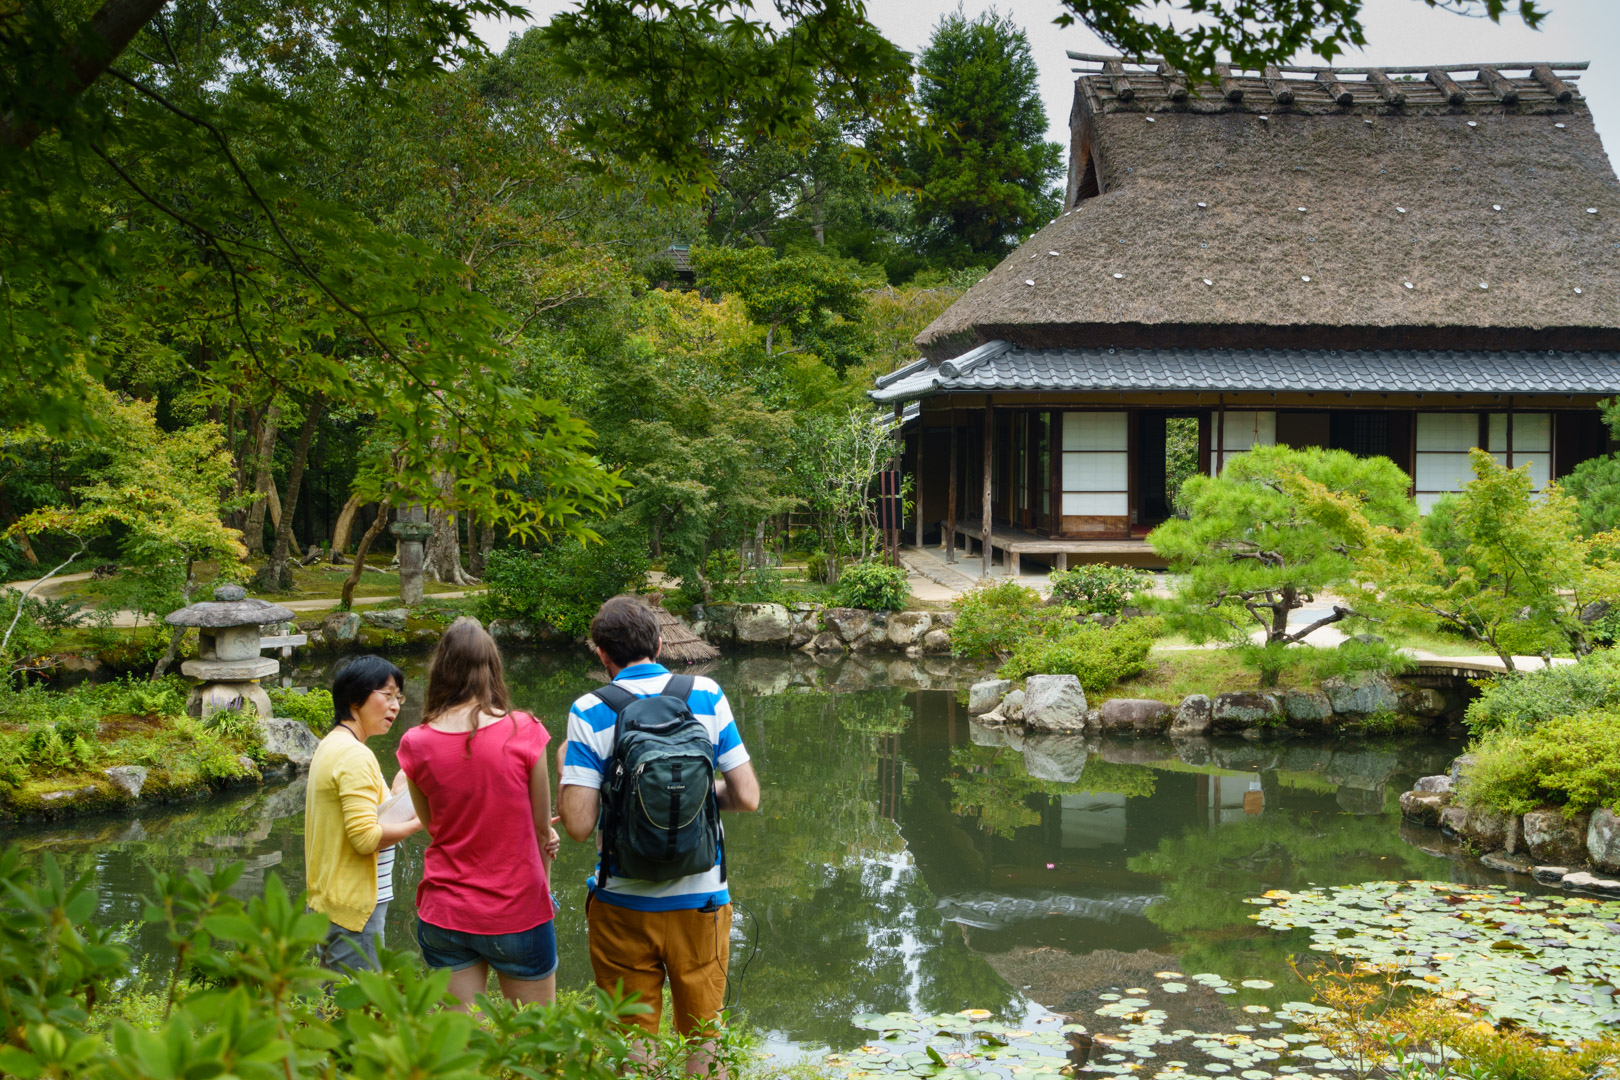 Spot Guide at Isuien Japanese Garden